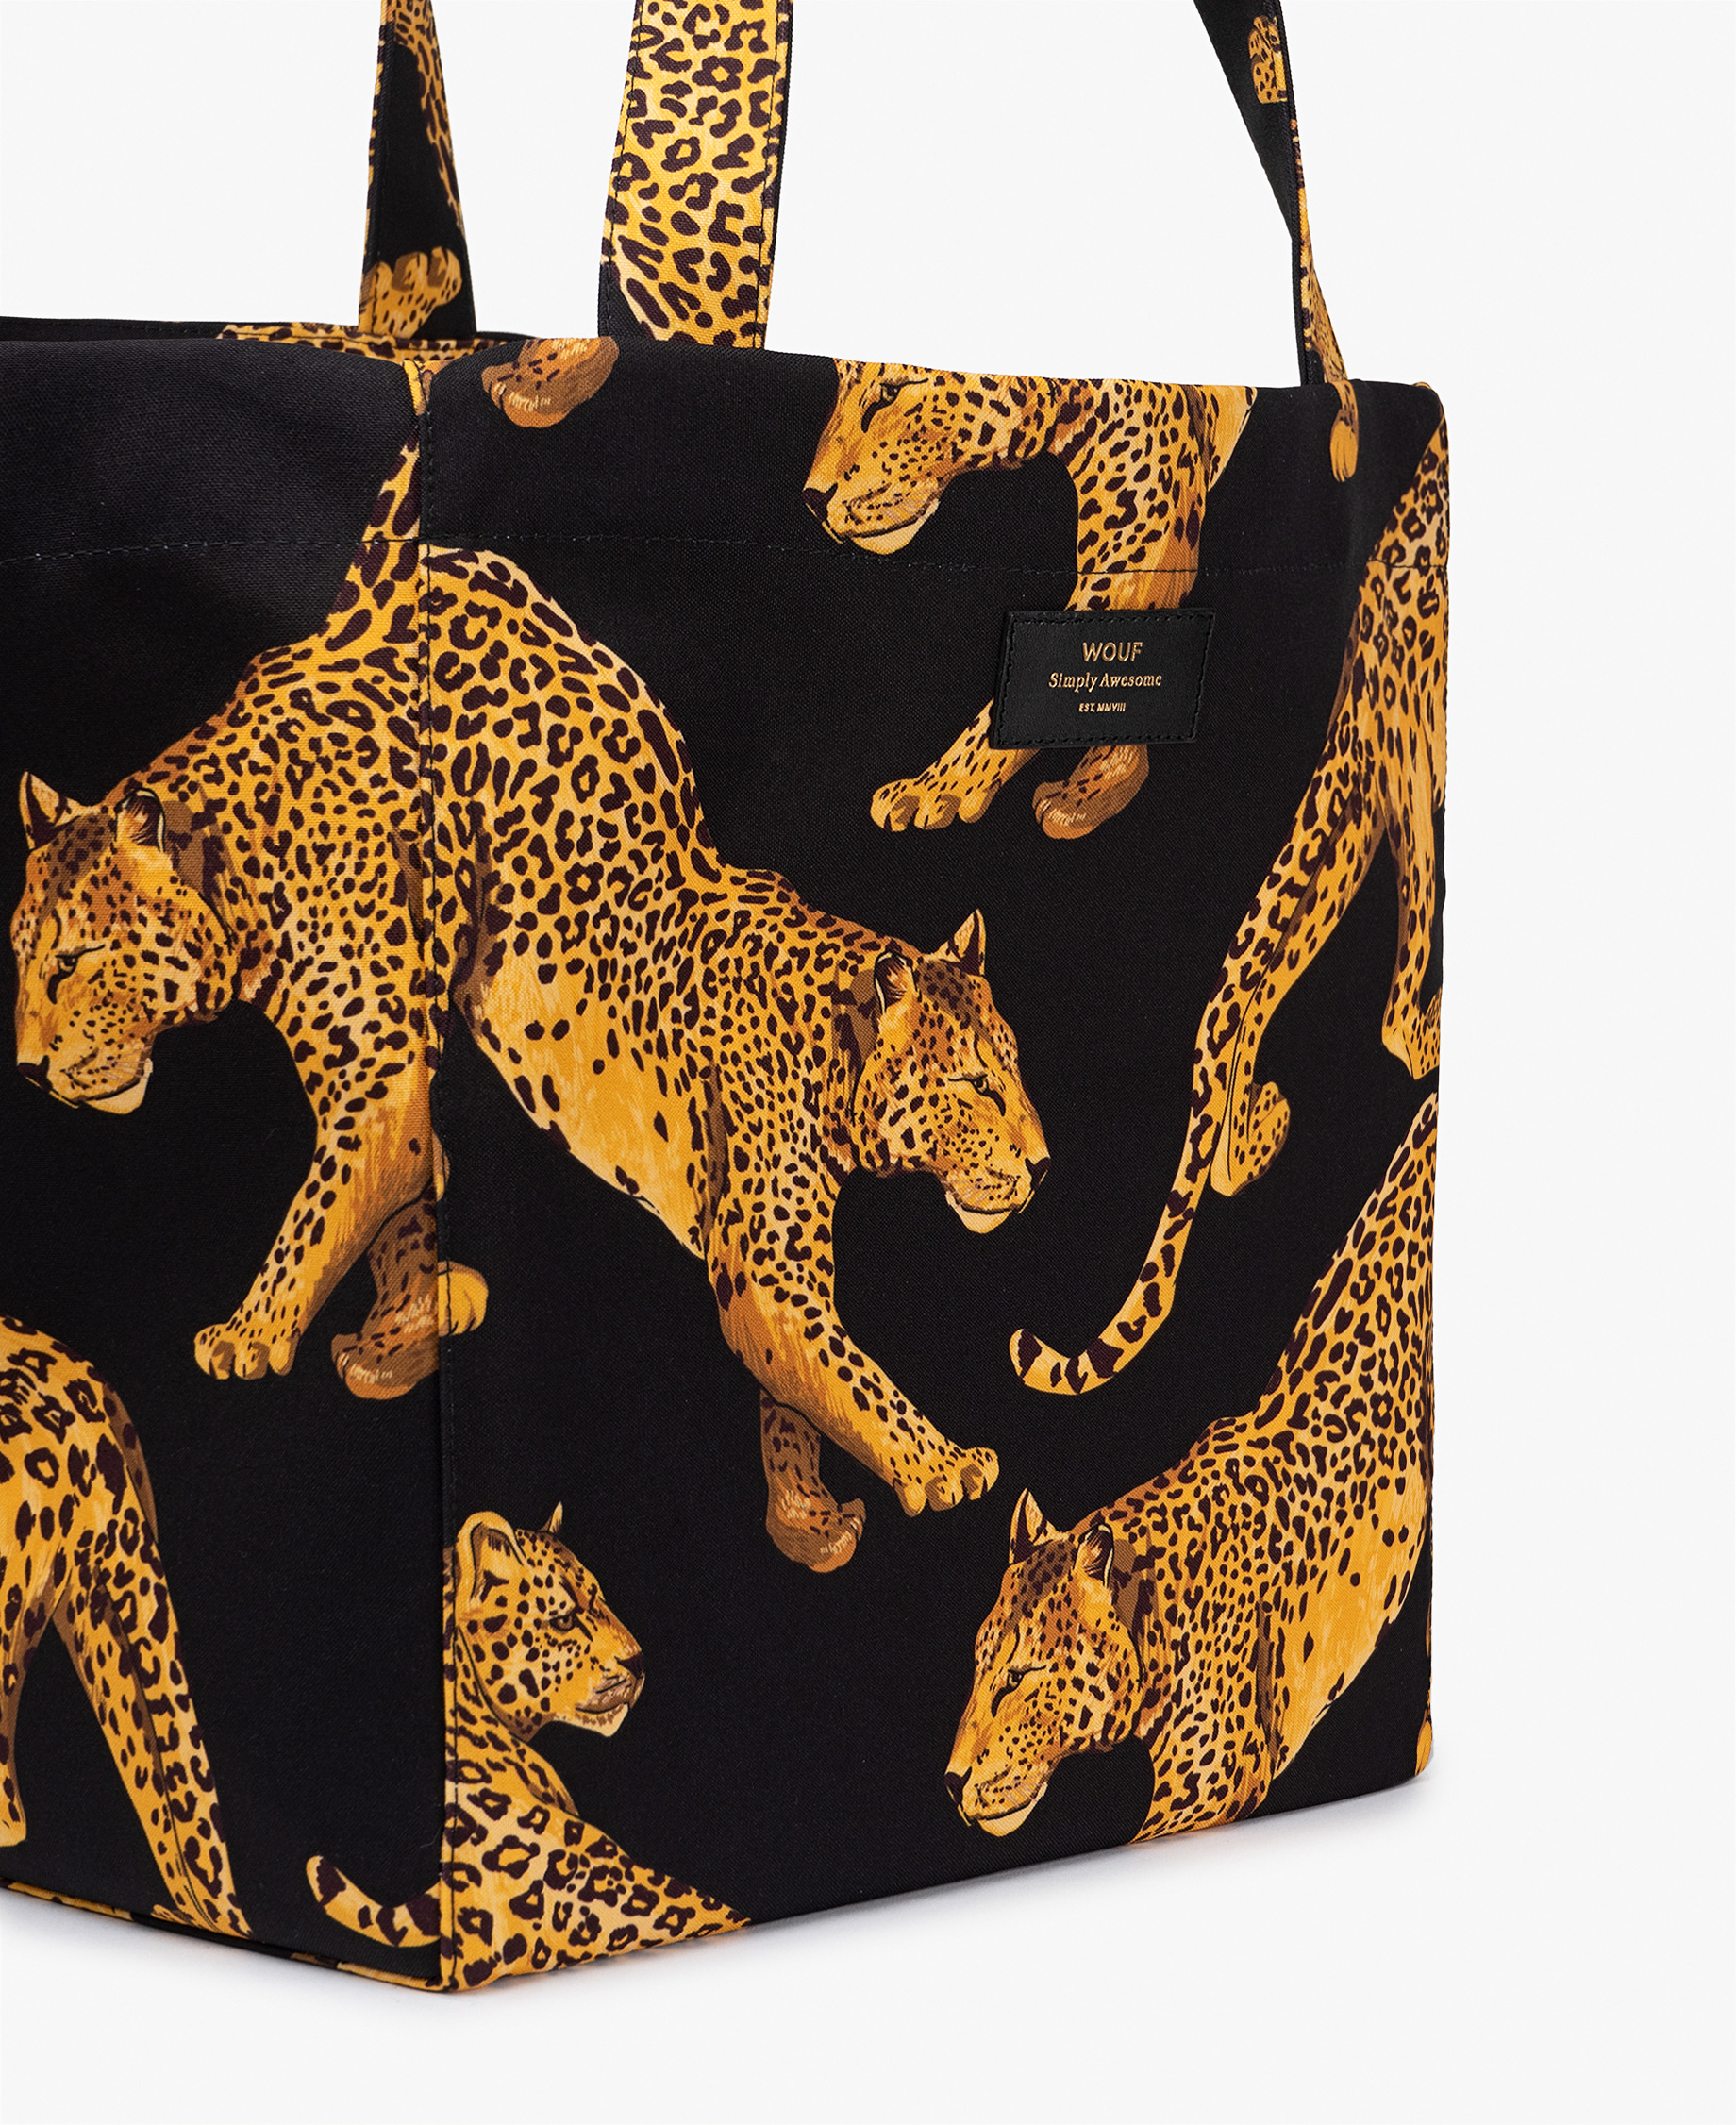 woman tote bag in black with leopards